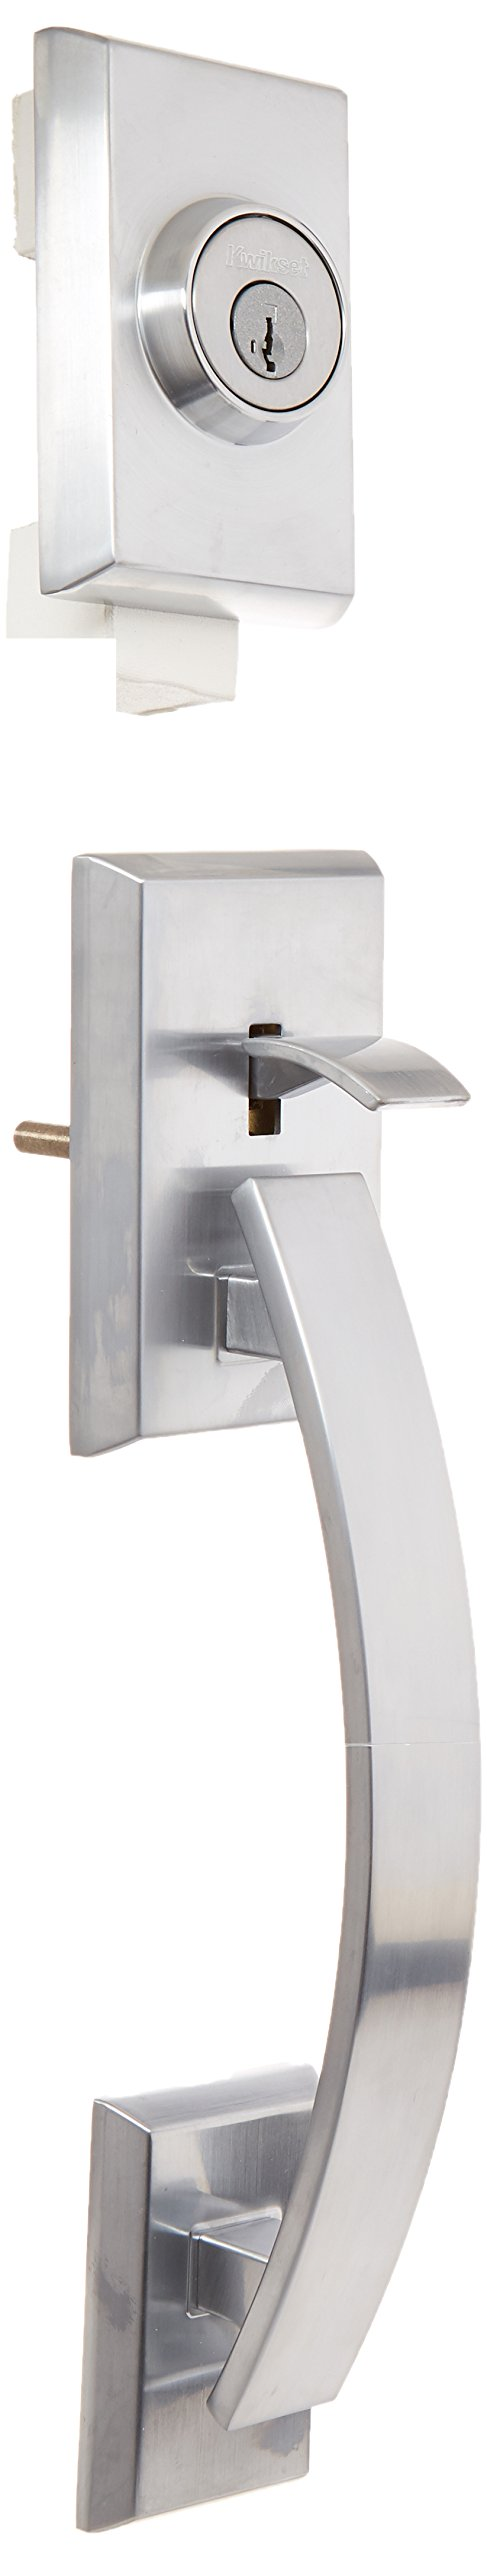 Kwikset 801TVHLIP-26DS Tavaris Double Cylinder Exterior Handleset Smart Key Satin Chrome Finish